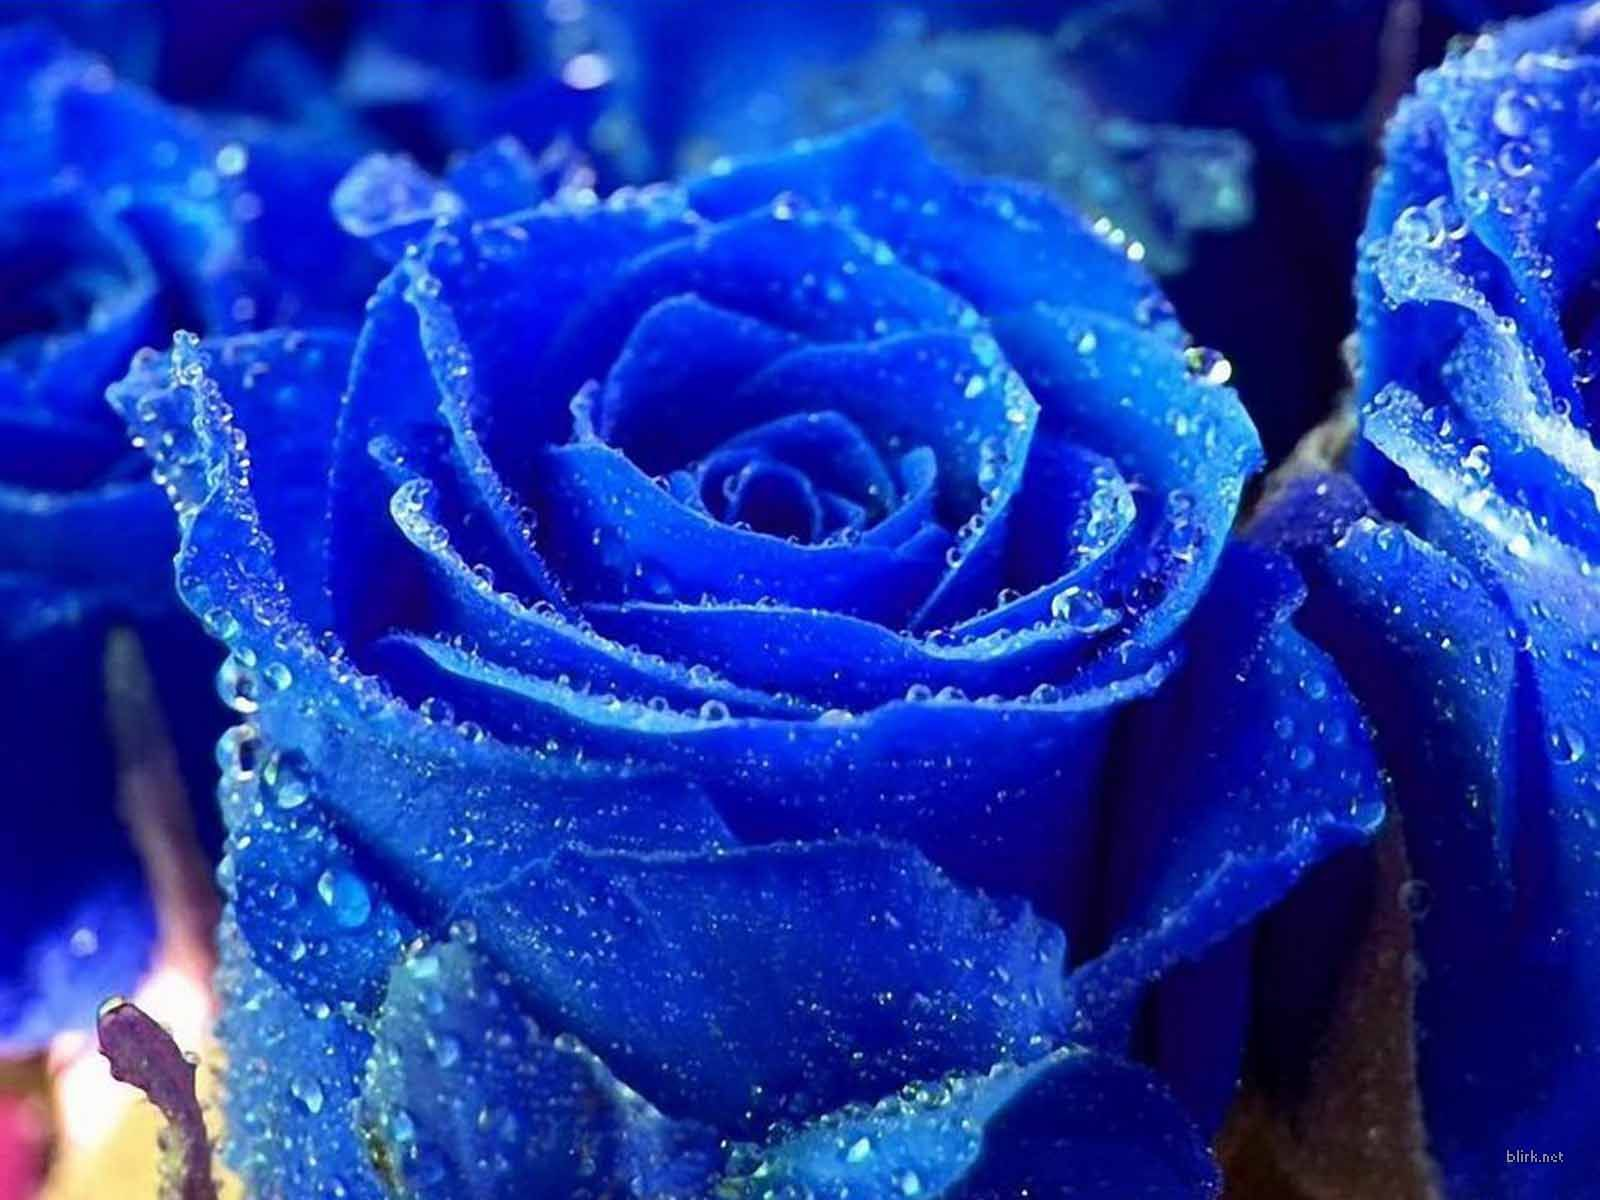 Rose Hd Latest Wallpaper Free Download New Hd Wallpapers Download Blue Flower Pictures Blue Roses Wallpaper Rose Wallpaper